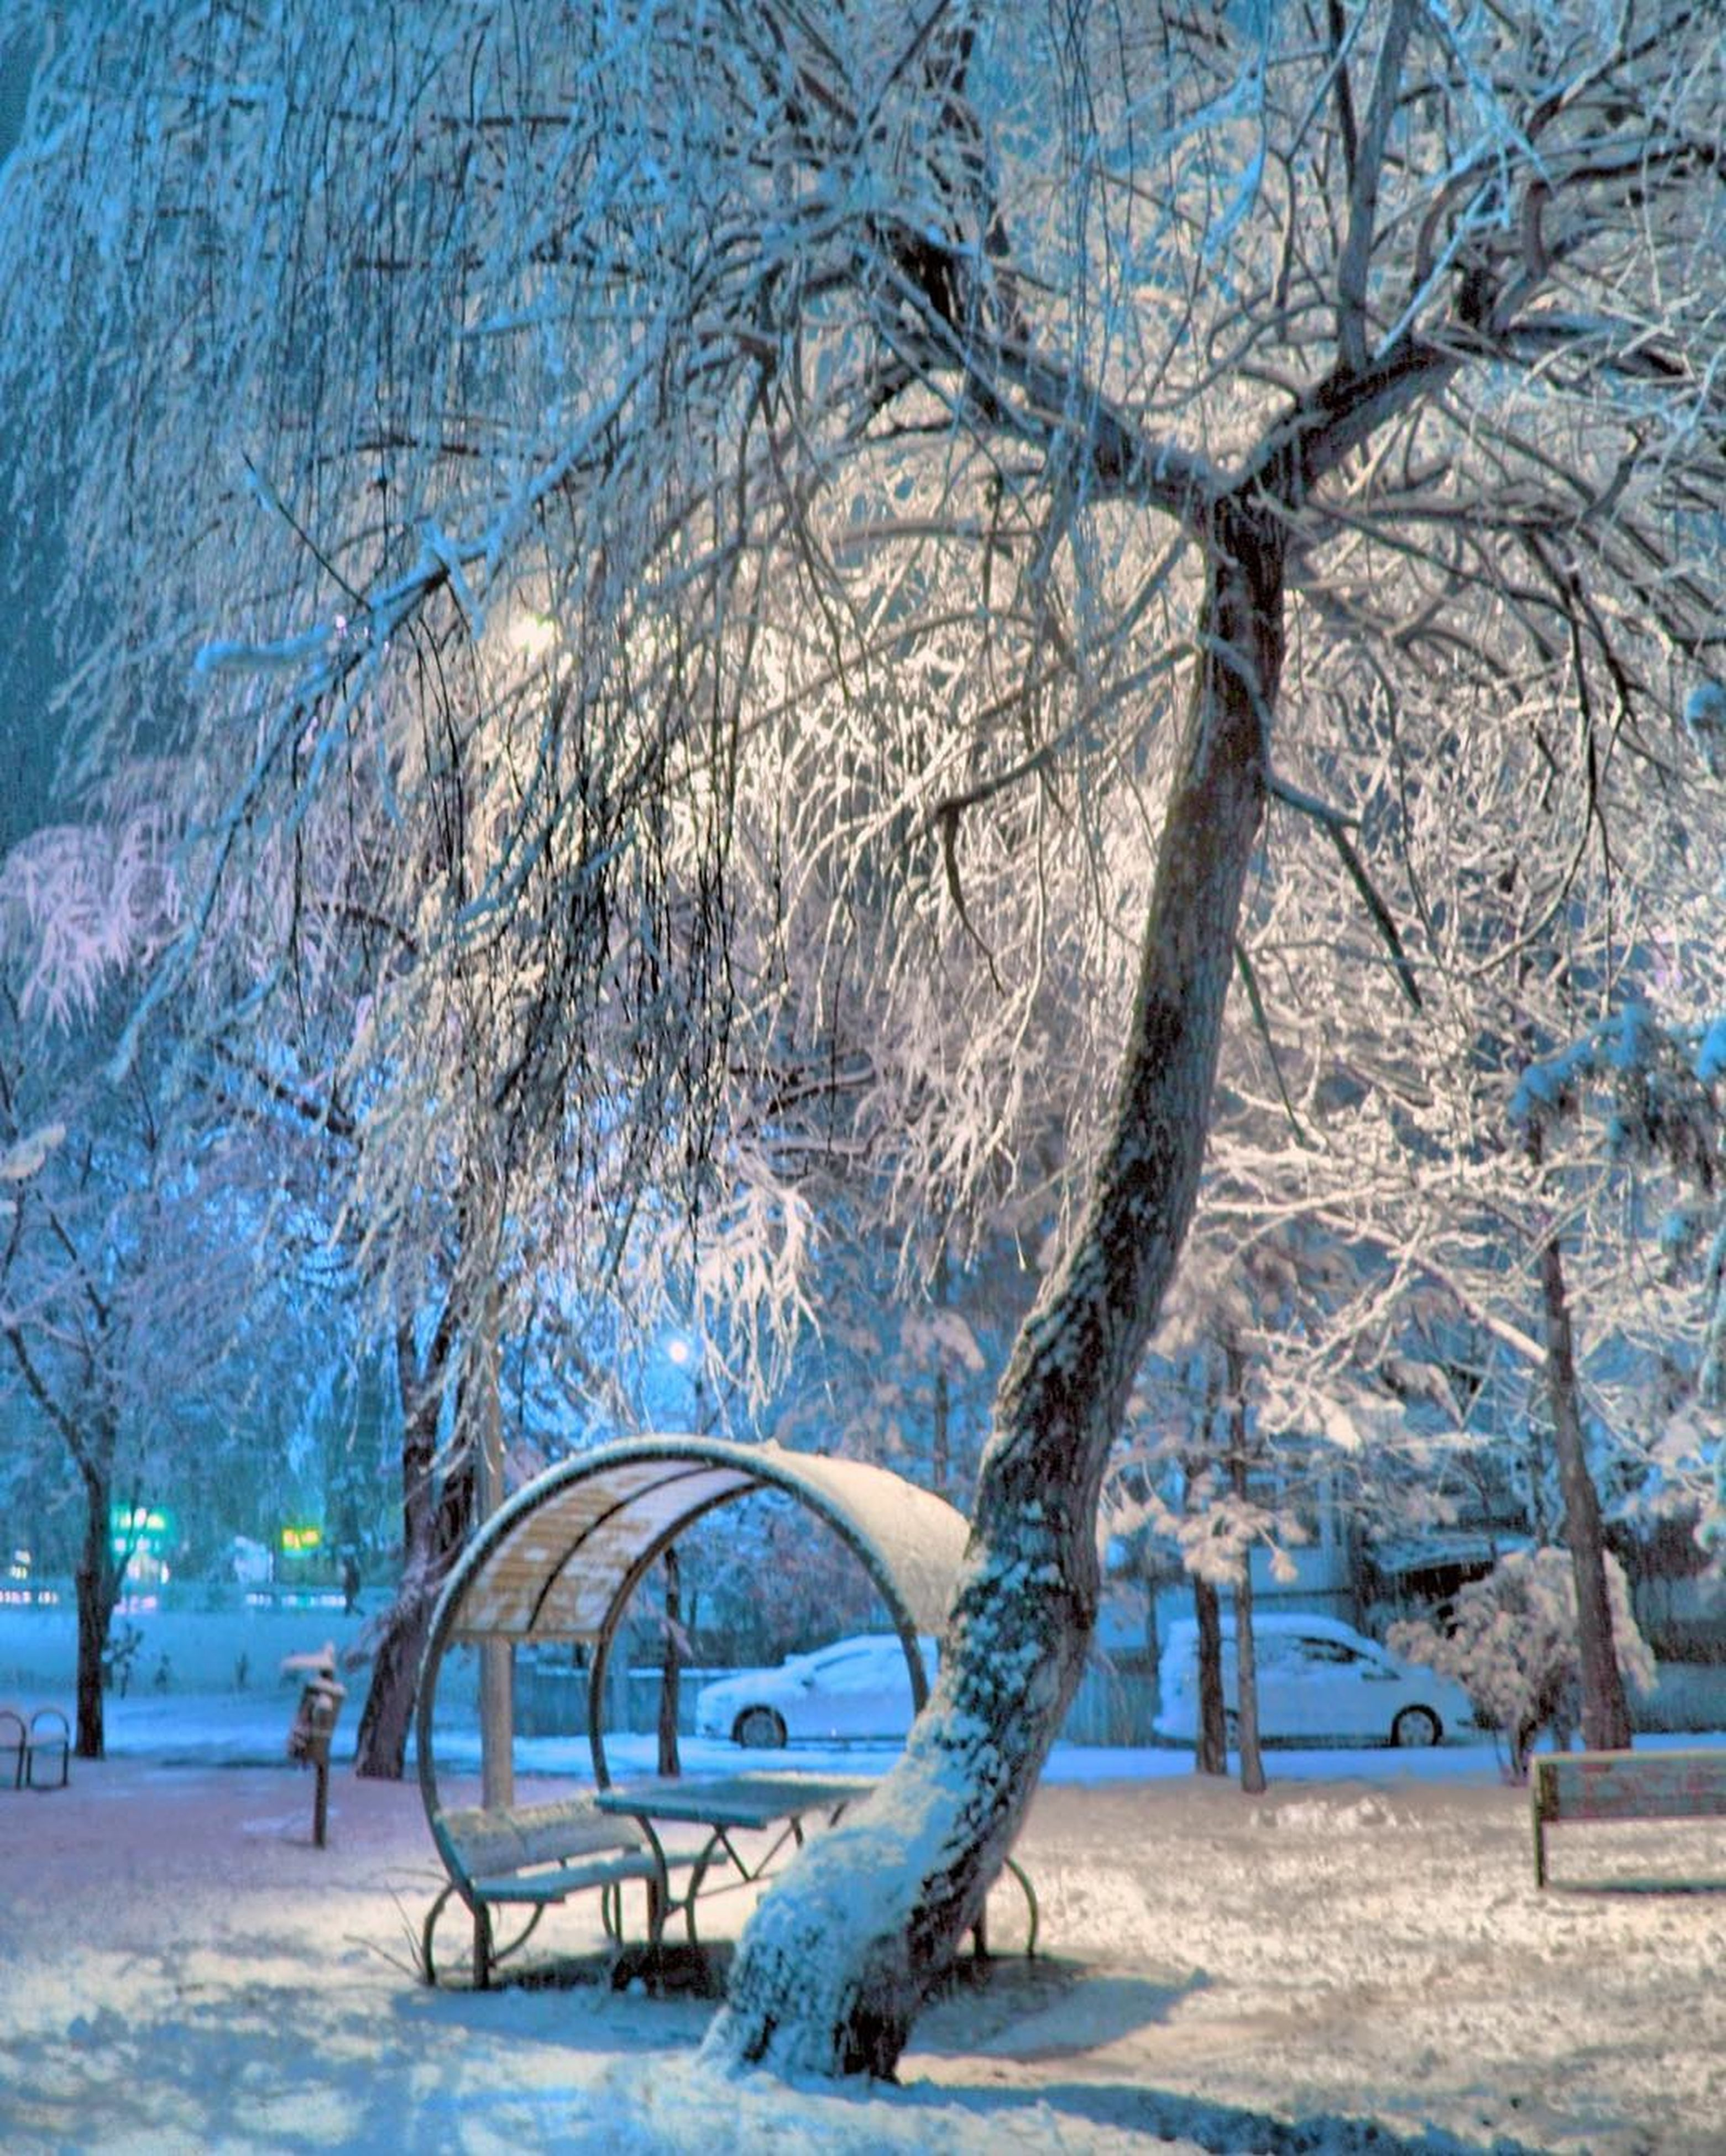 tree, winter, cold temperature, snow, bare tree, branch, blue, playground, park - man made space, nature, outdoors, scenics, no people, beauty in nature, tranquility, childhood, day, sky, close-up